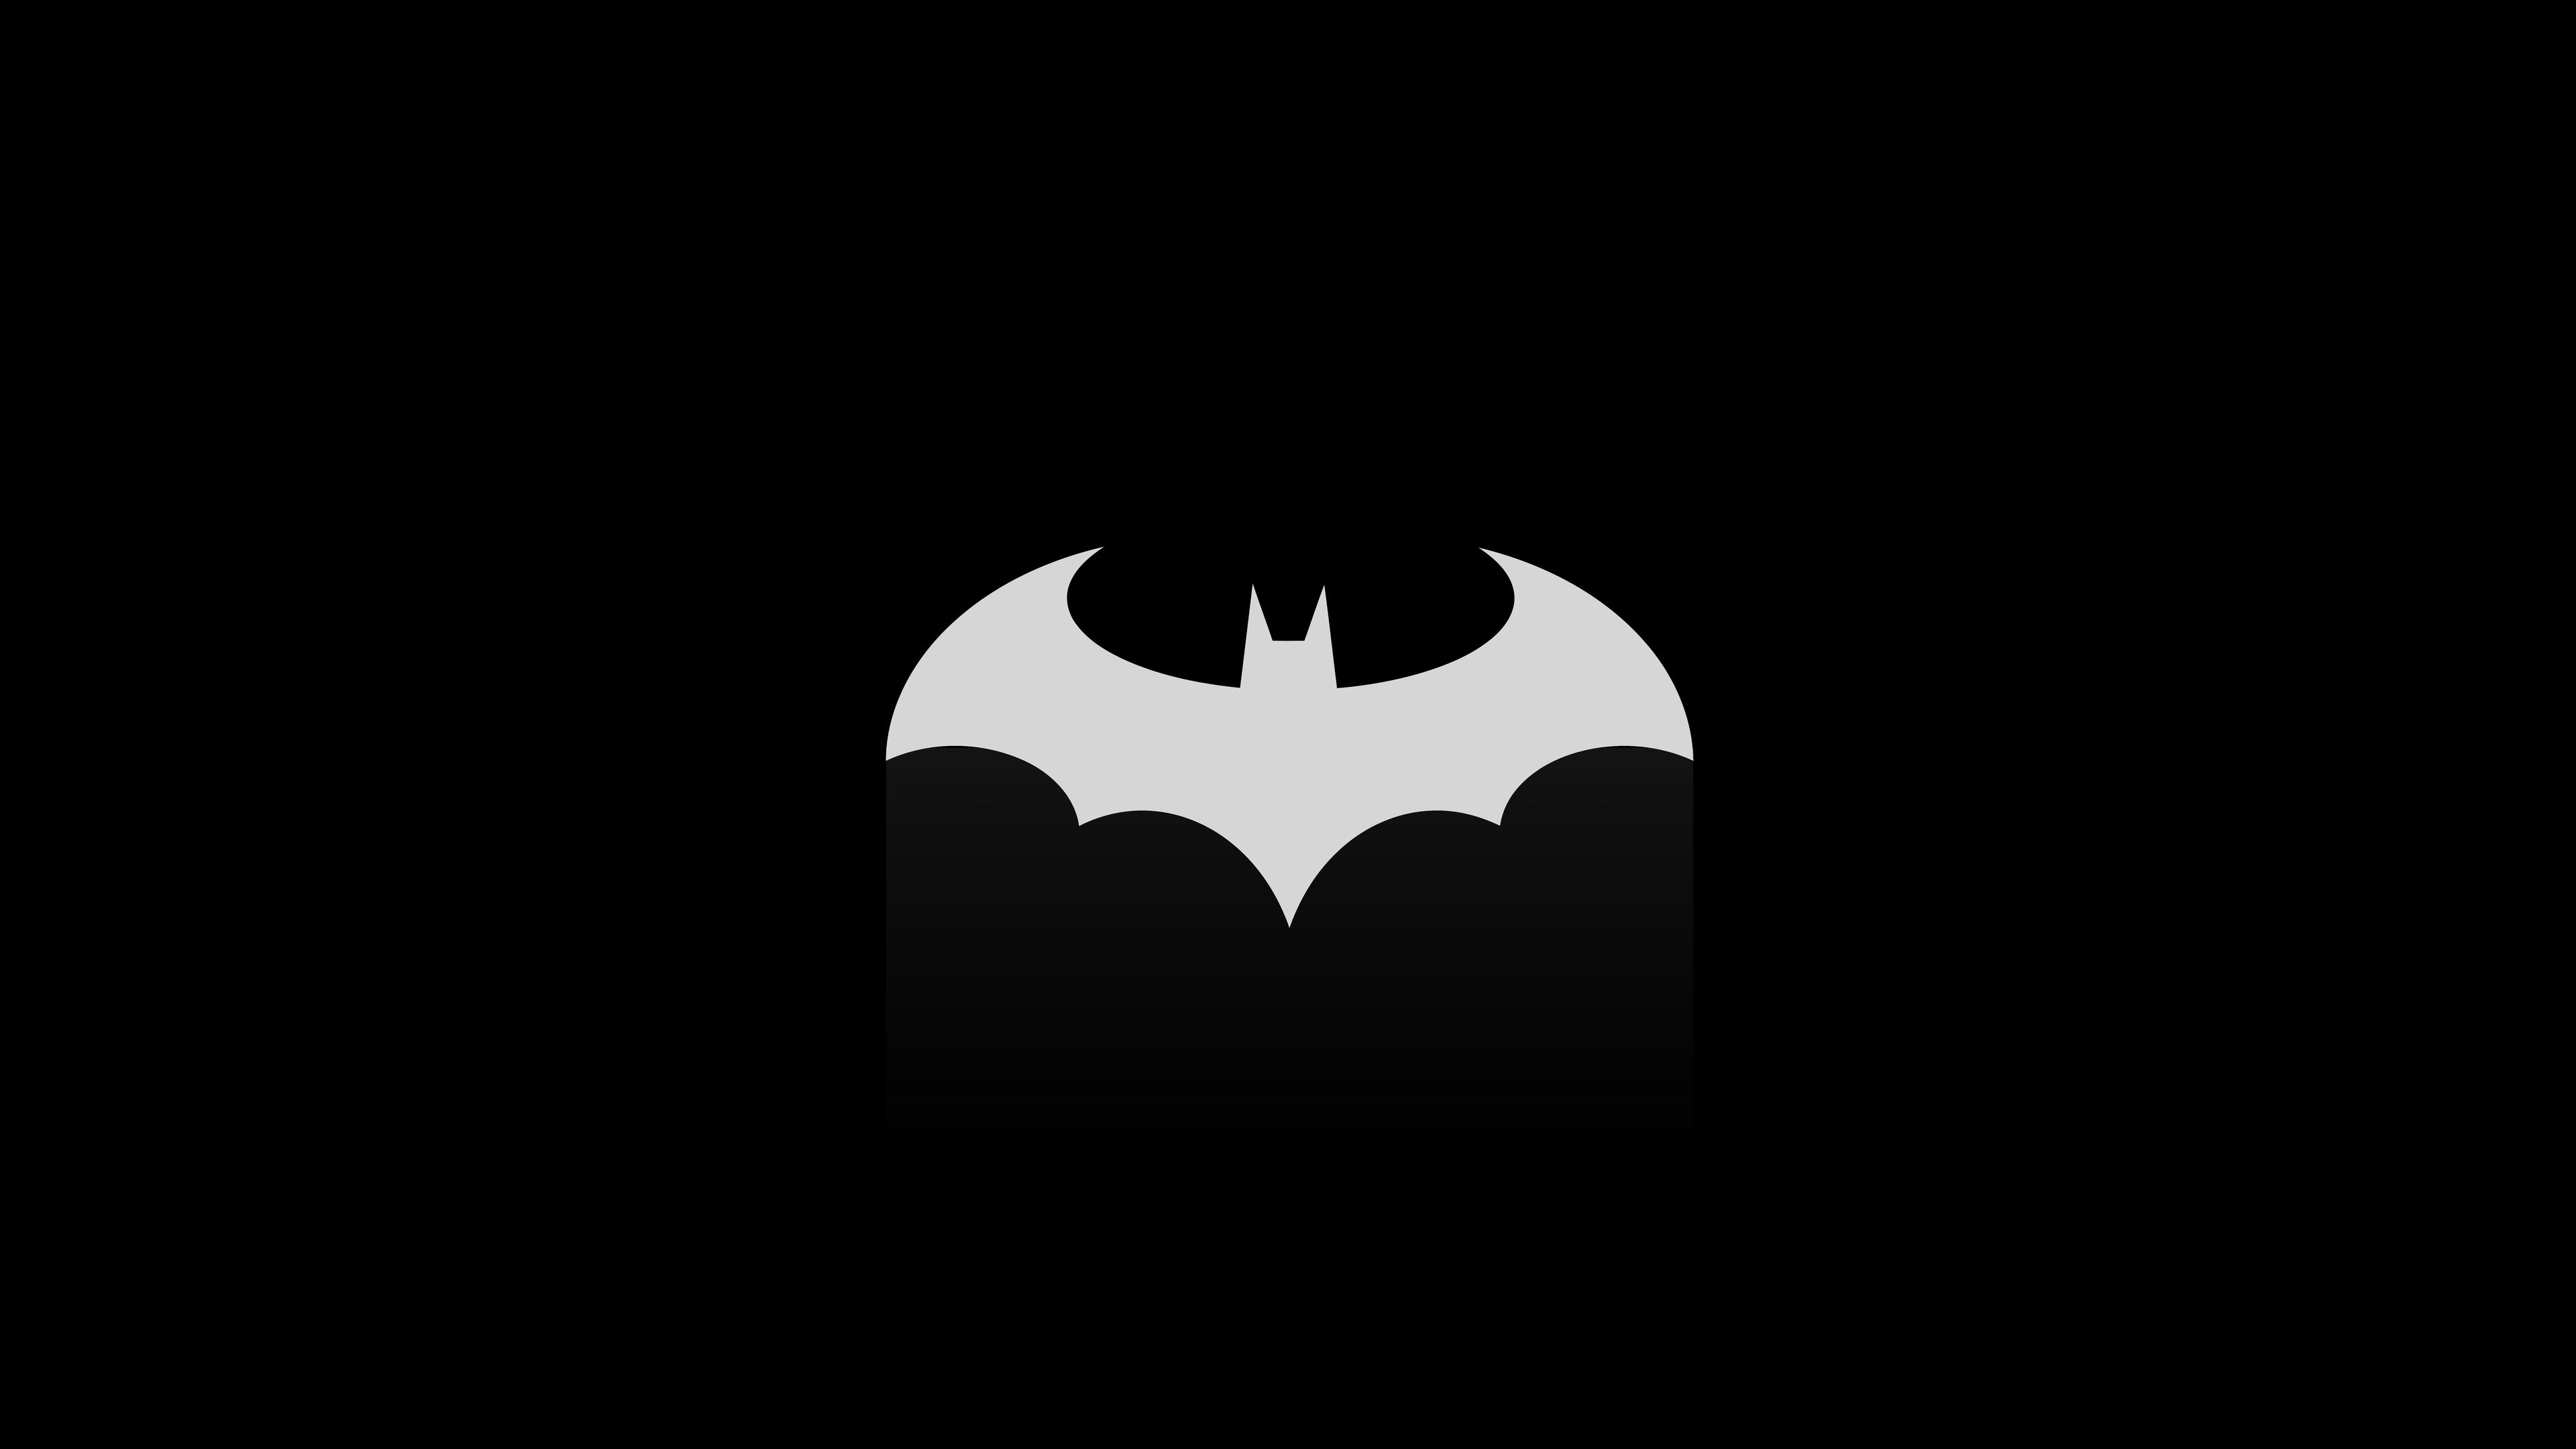 Wallpaper 4k Batman Logo 10k 10k Wallpapers 4k Wallpapers 5k